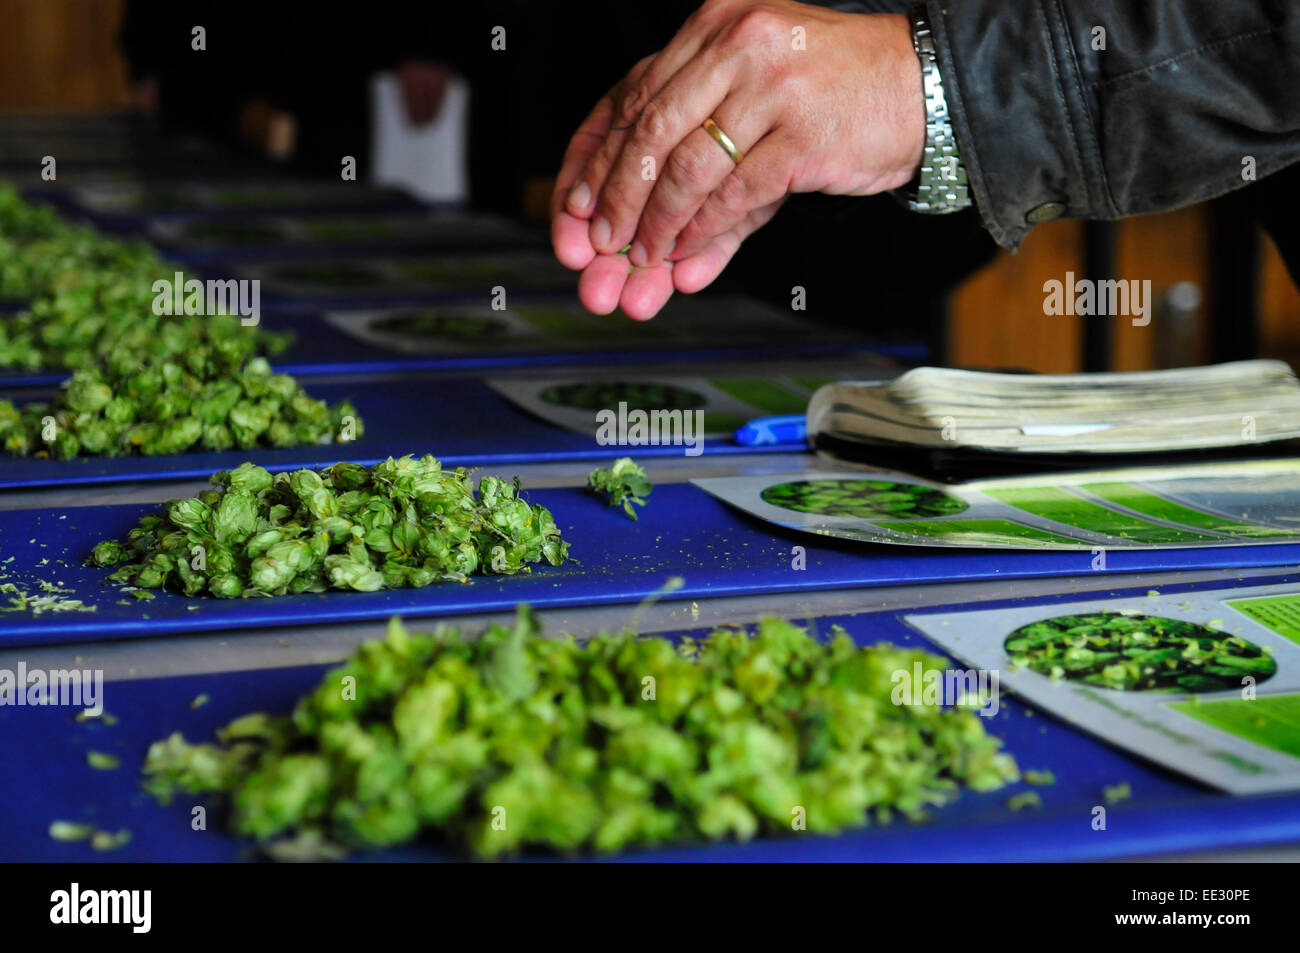 Man Holding Hops in the Czech Republic - Stock Image